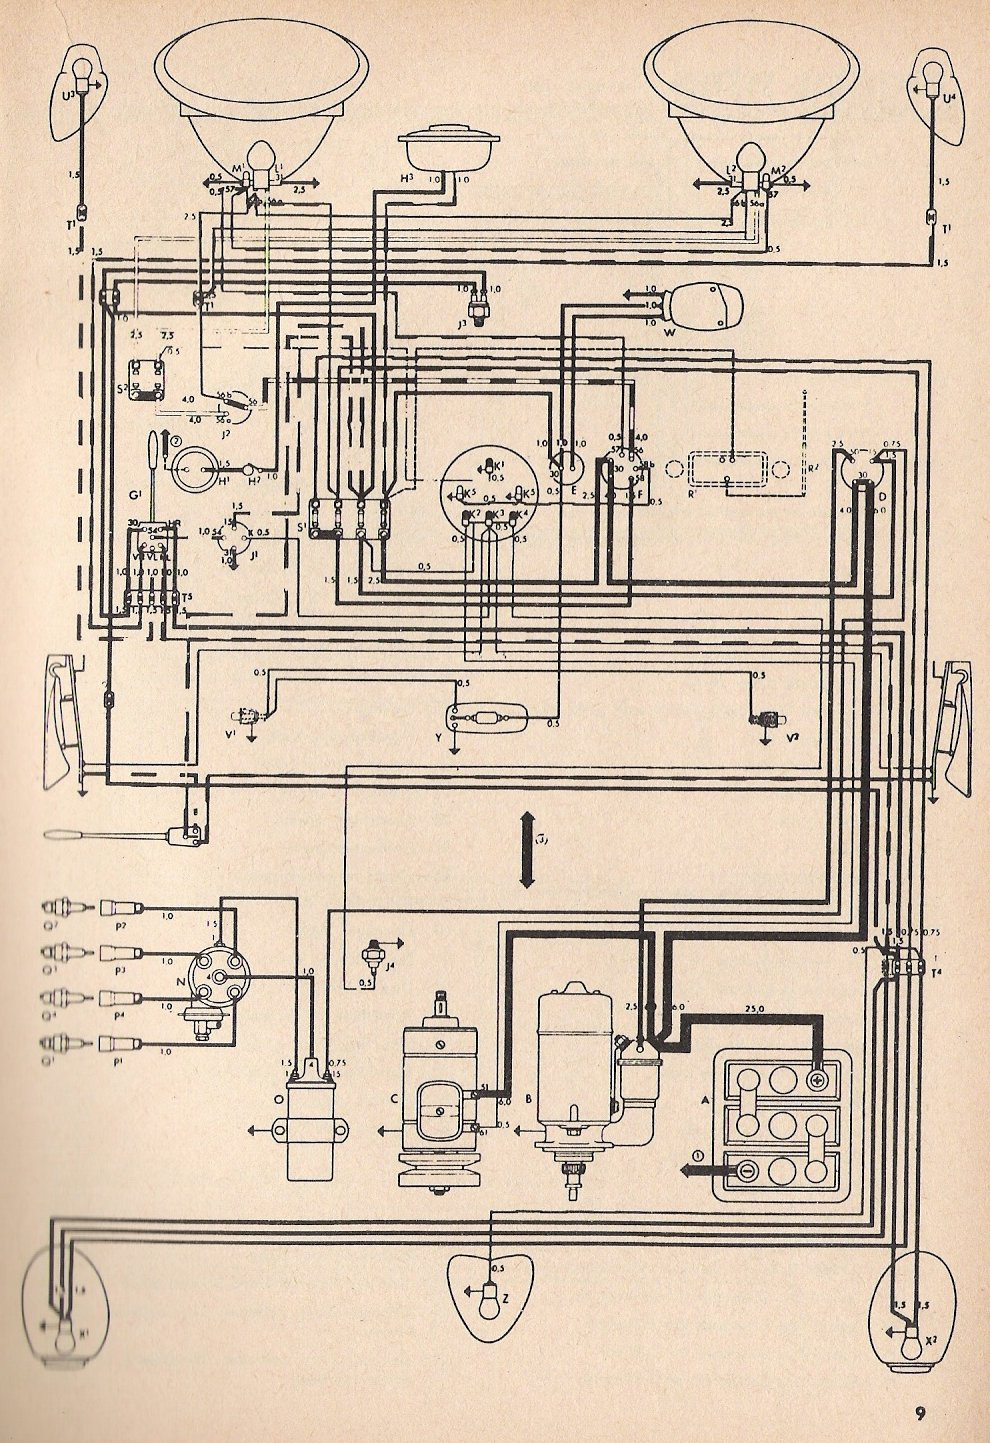 1979 Vw Beetle Wiring Diagram Wire Center Sine Wave Inverter Basiccircuit Circuit Seekiccom Thesamba Com Type 1 Diagrams Rh 1970 1973